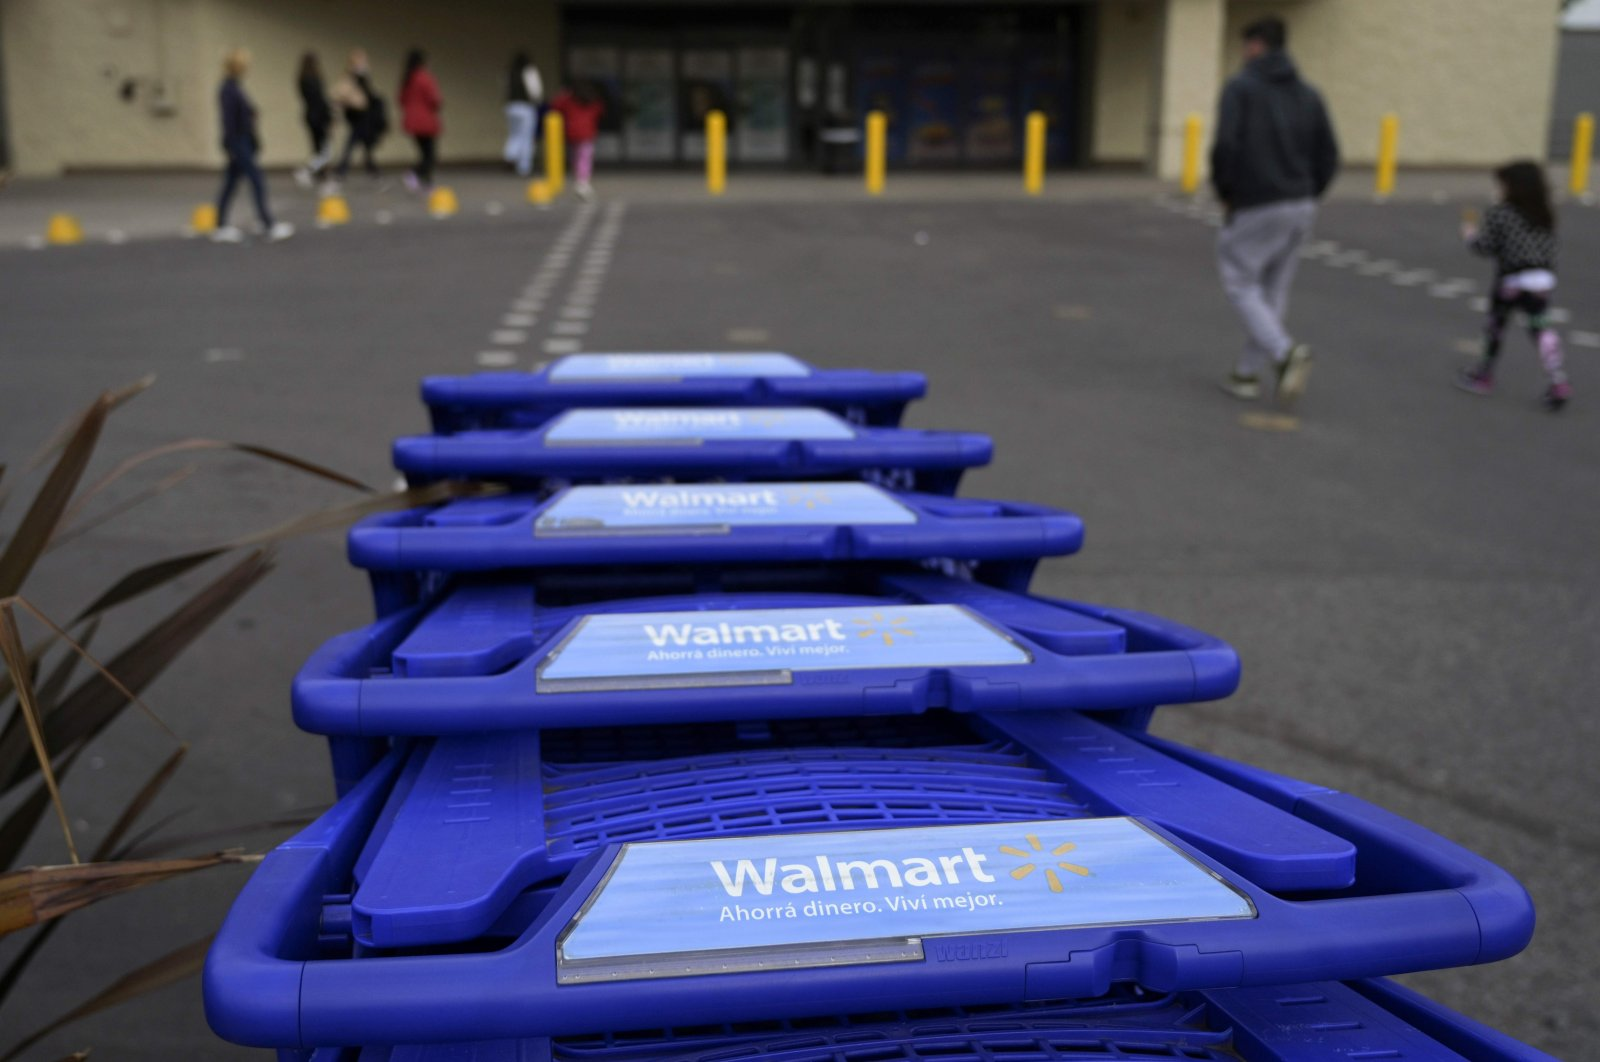 Customers arrive at a Walmart supermarket in Buenos Aires, Argentina, Aug. 15, 2019. (AFP Photo)